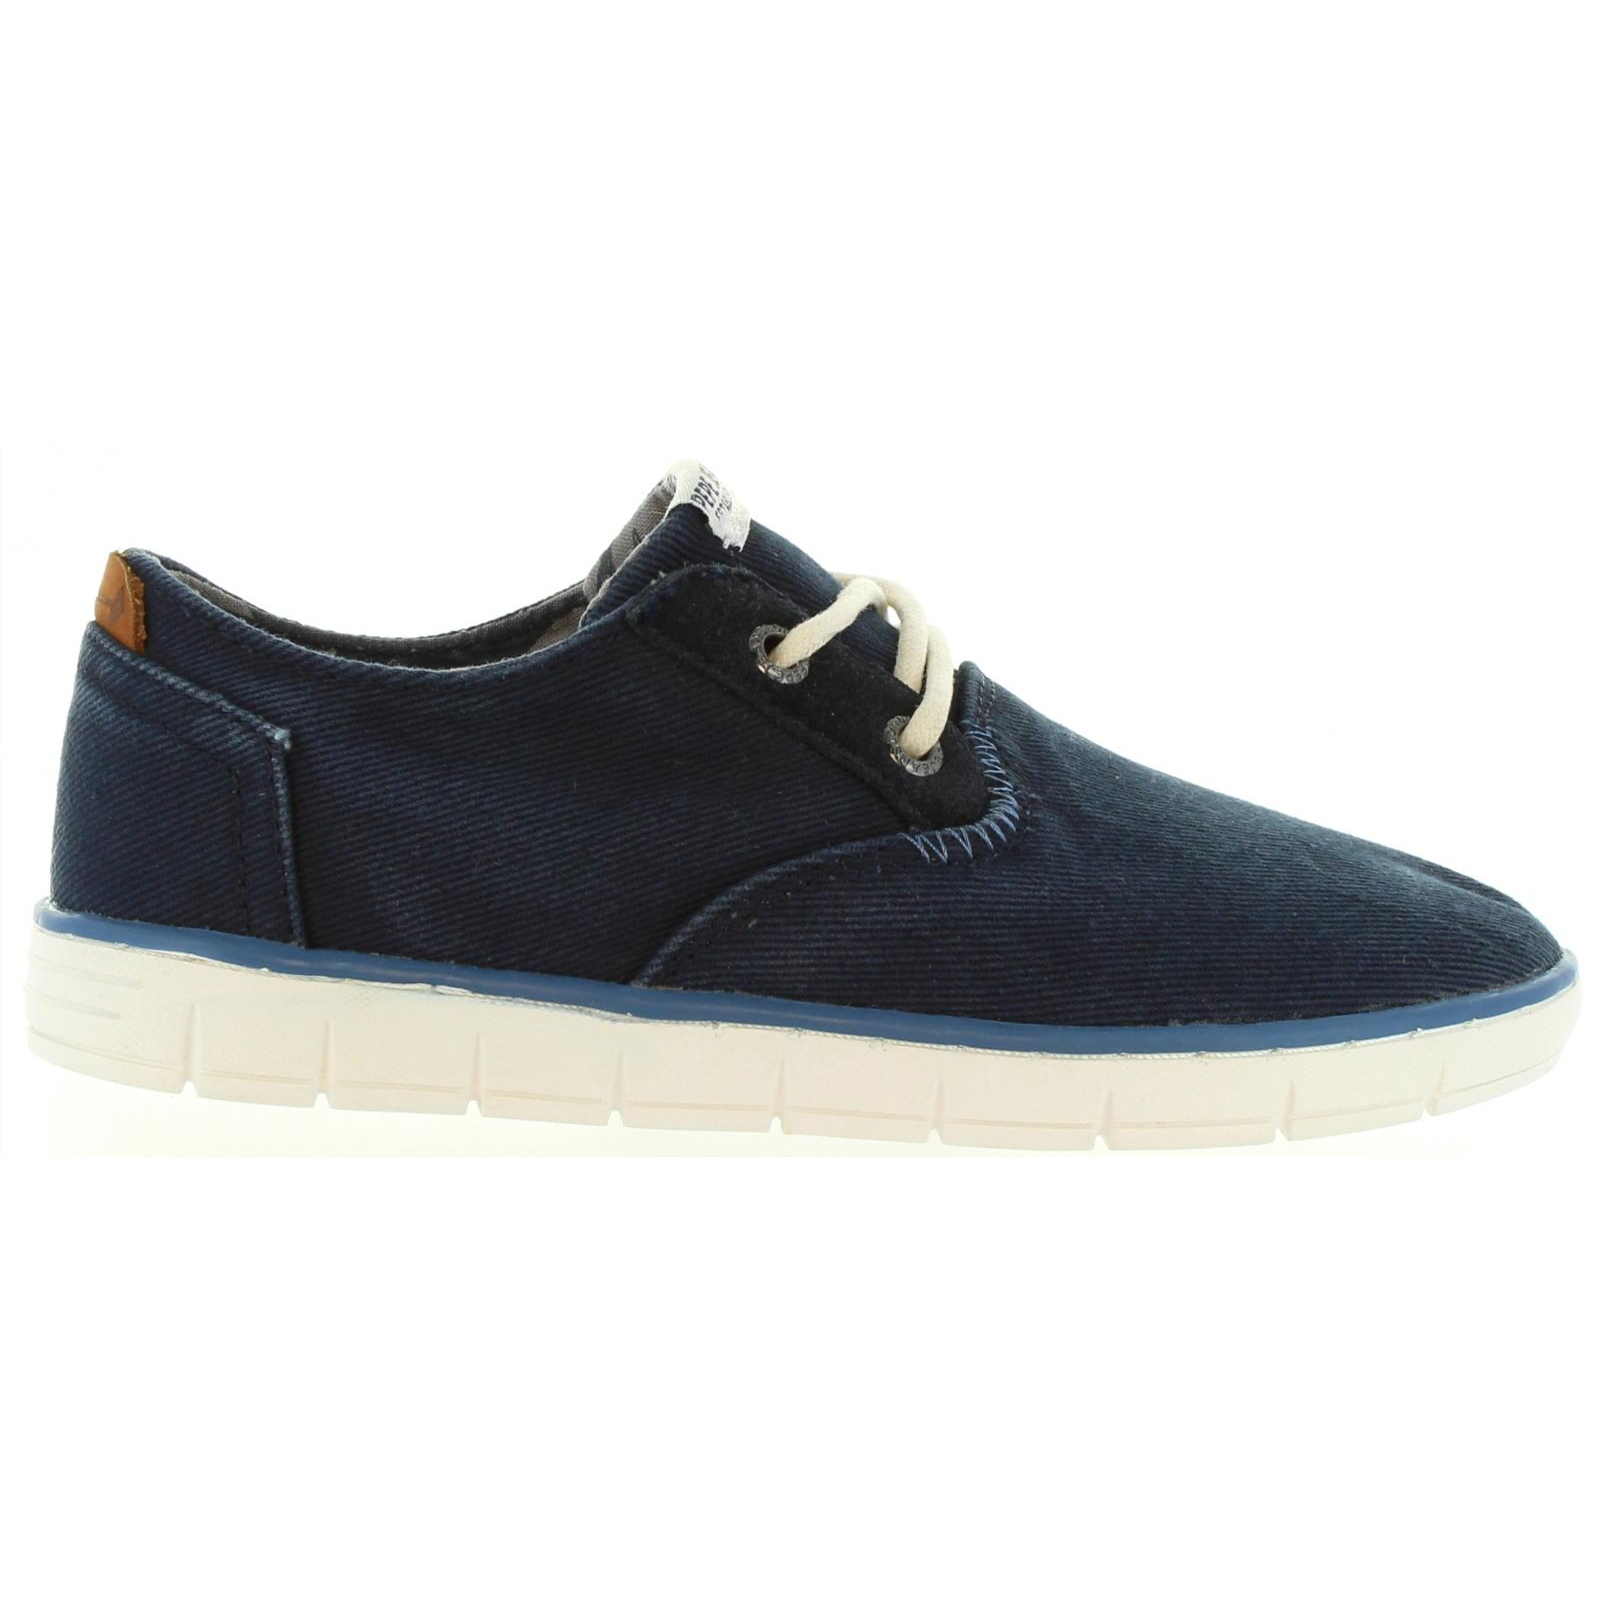 online store 1addc 550c2 shoes-girl-PEPE JEANS-PBS30166 RACE-575 NAVAL B Size 32